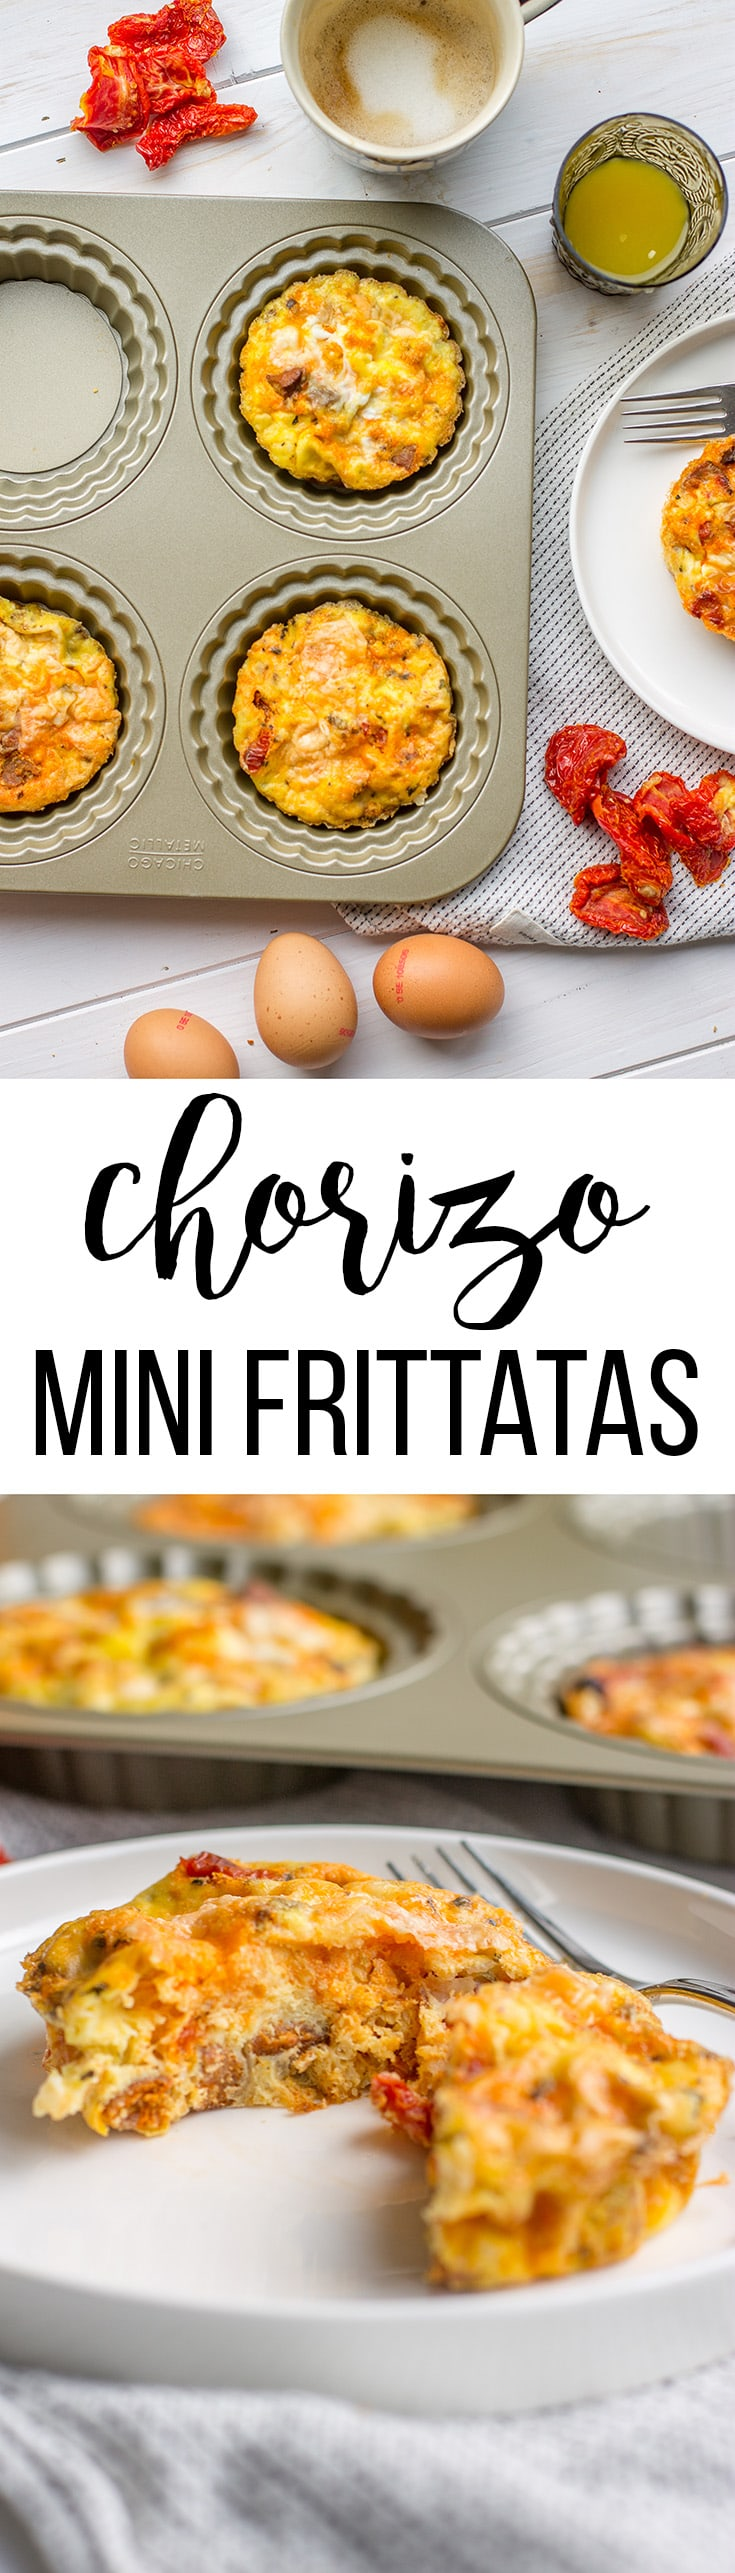 Chorizo sun-dried tomato mini frittatas | Quick and easy make-ahead breakfast, or add a little salad for a fast dinner! #minifrittata #onthegobreakfast